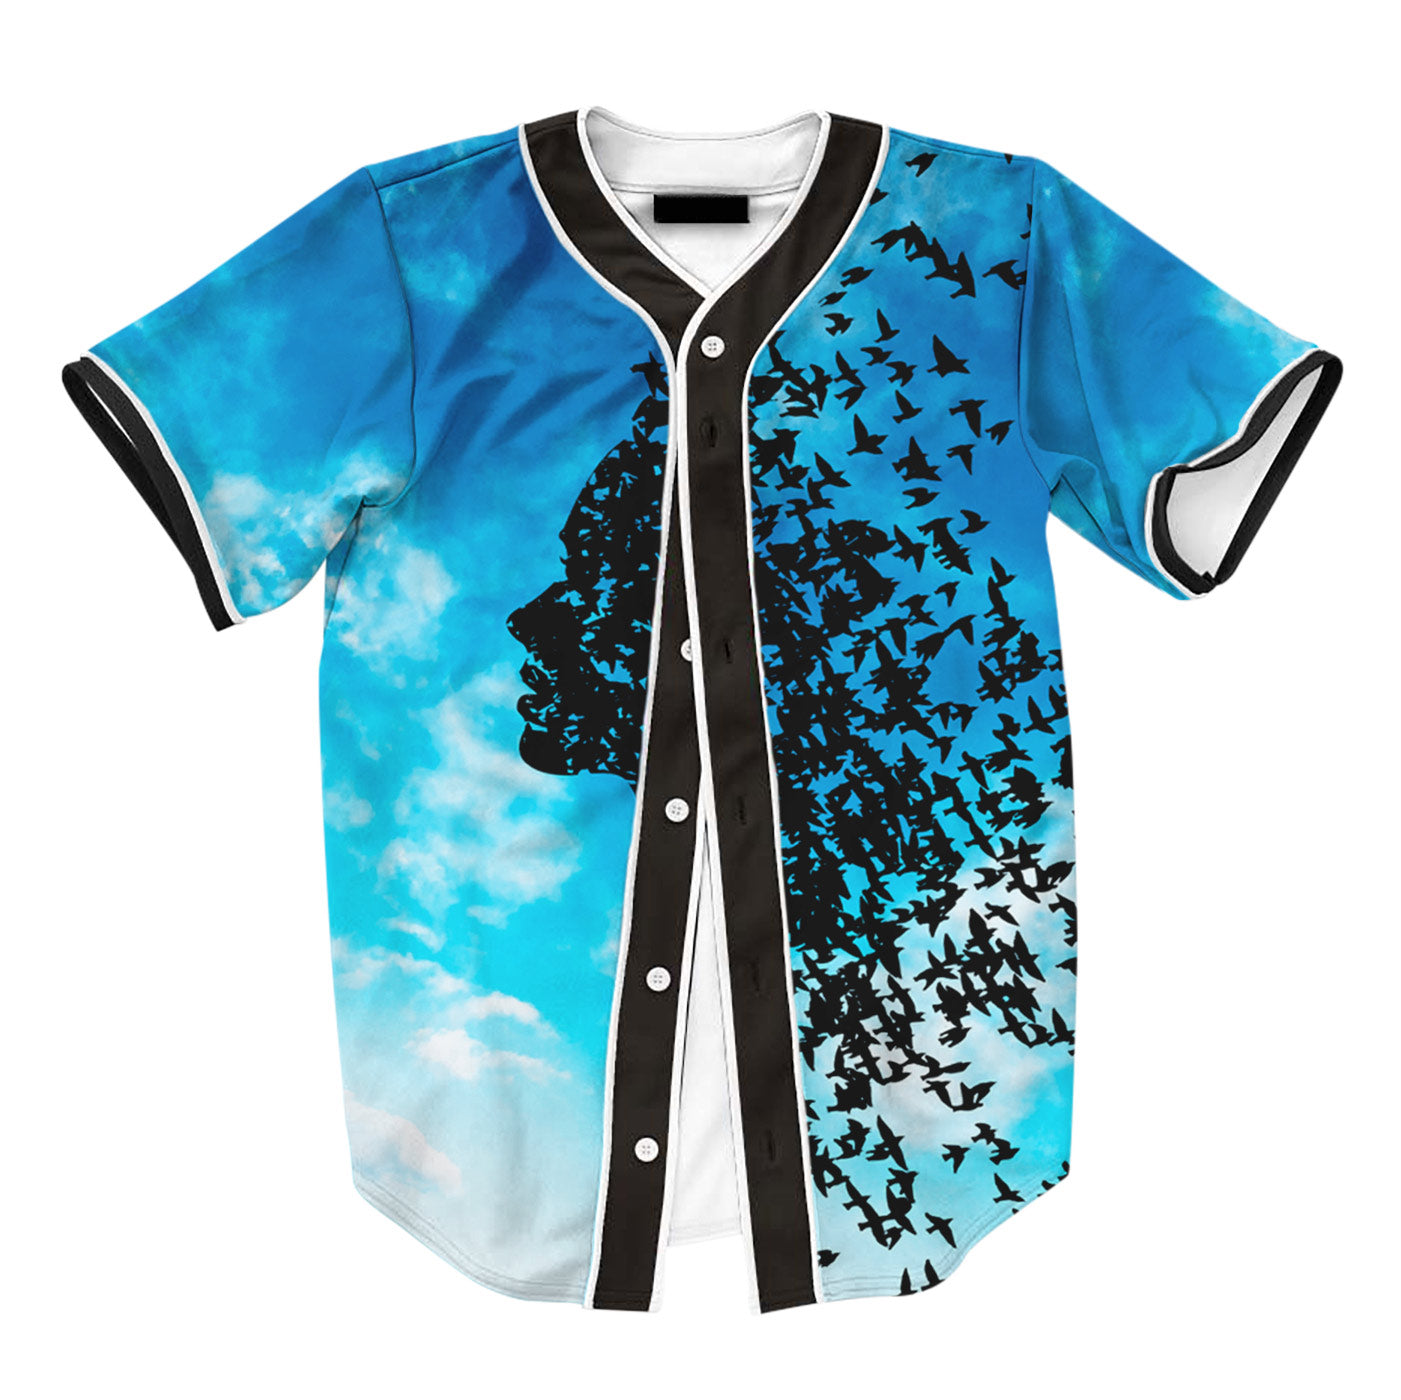 Artistic Soaring Jersey